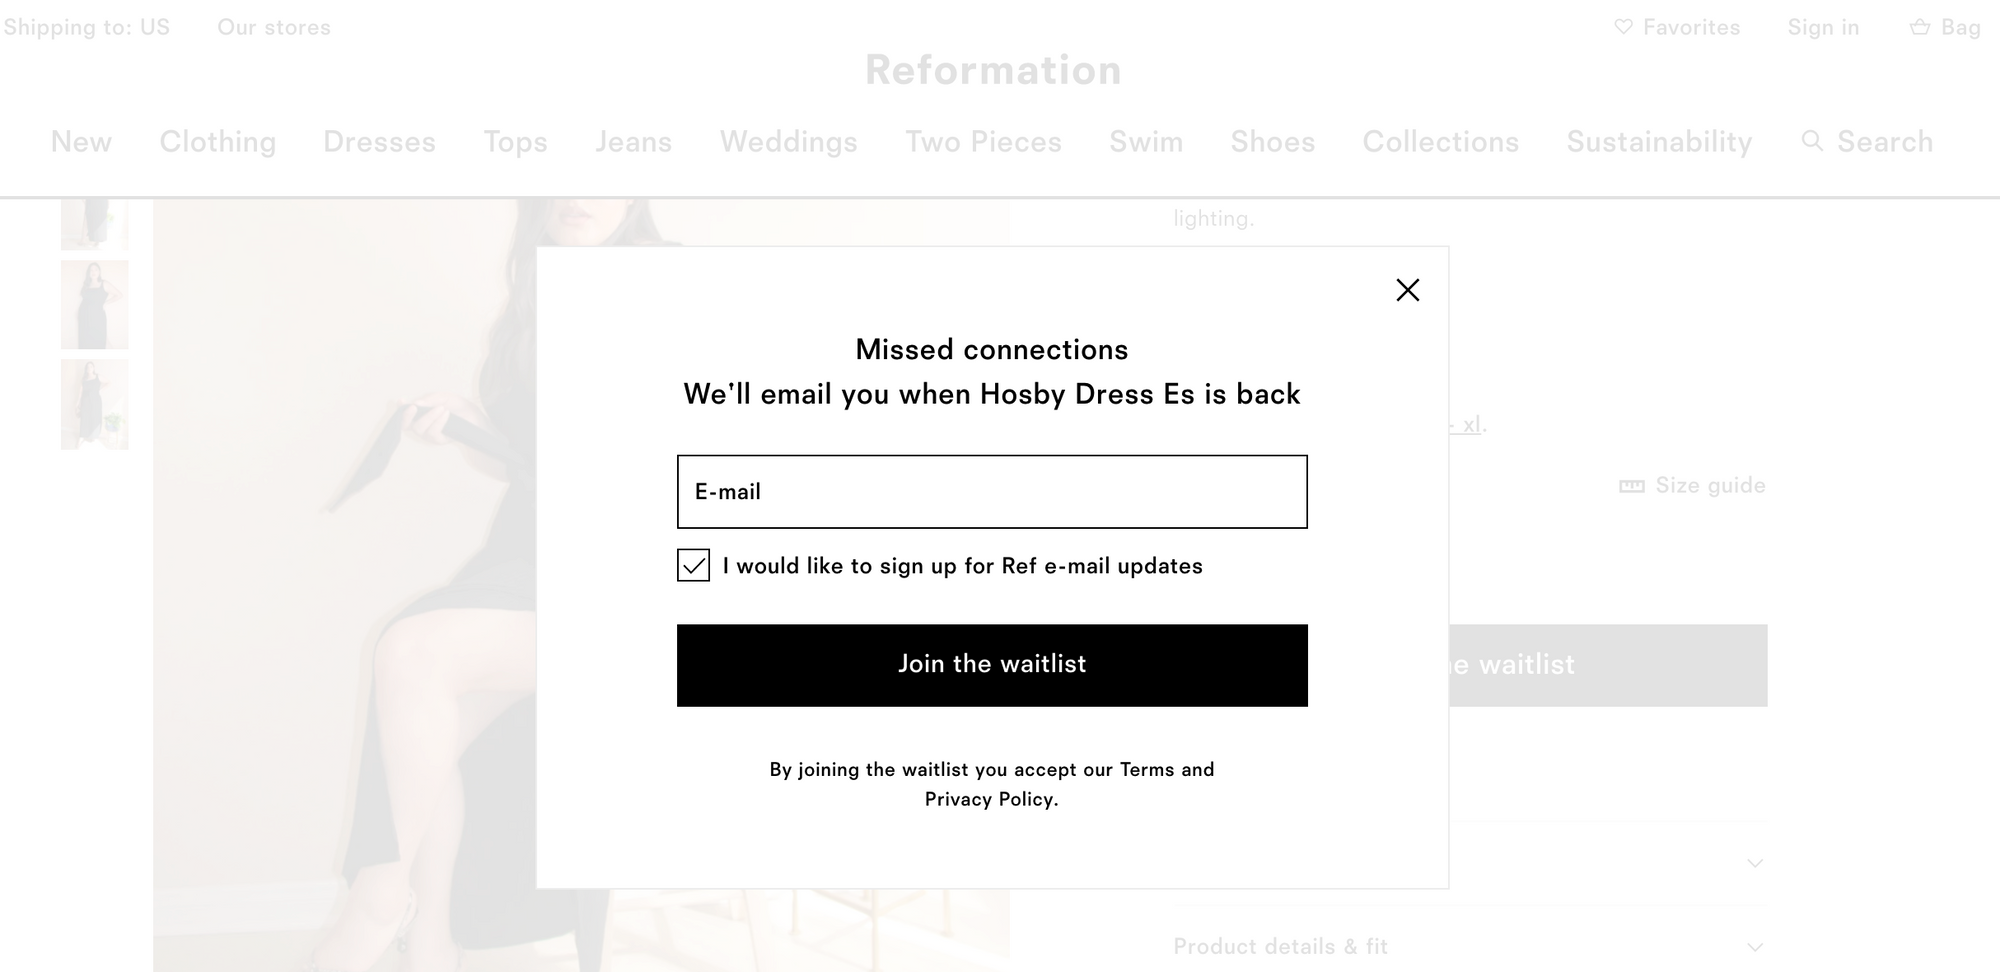 Back in Stock Notification - Reformation